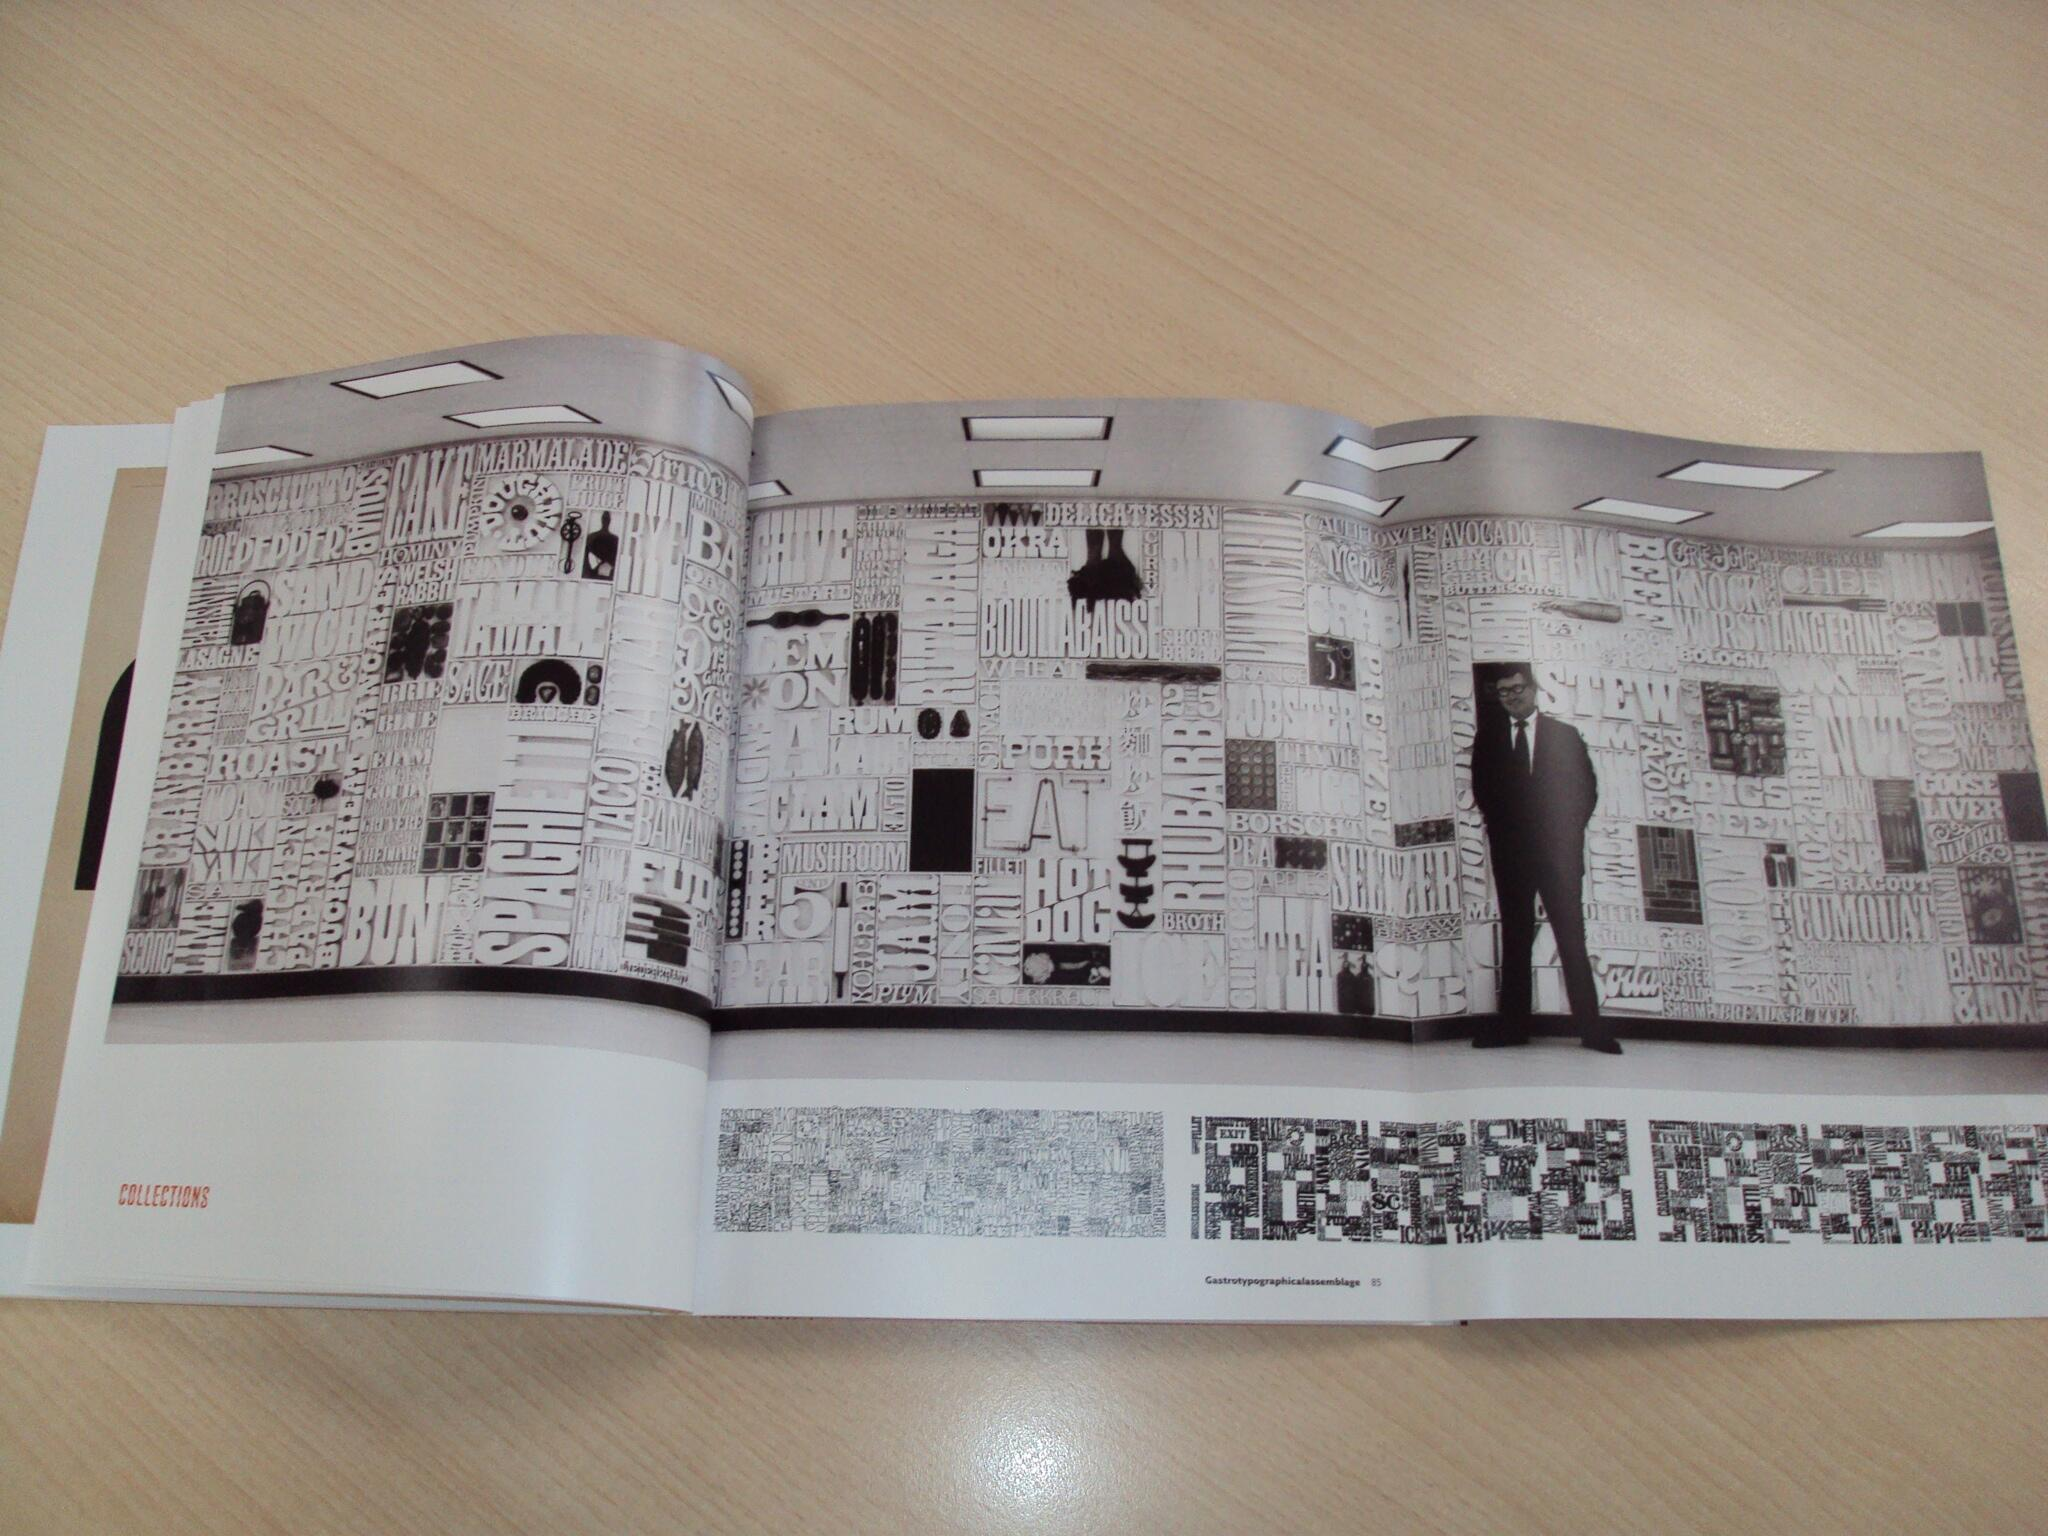 The Gastrotypographicalassemblage foldout in issue #3 of Codex magazine http://t.co/5Vx6maijd1